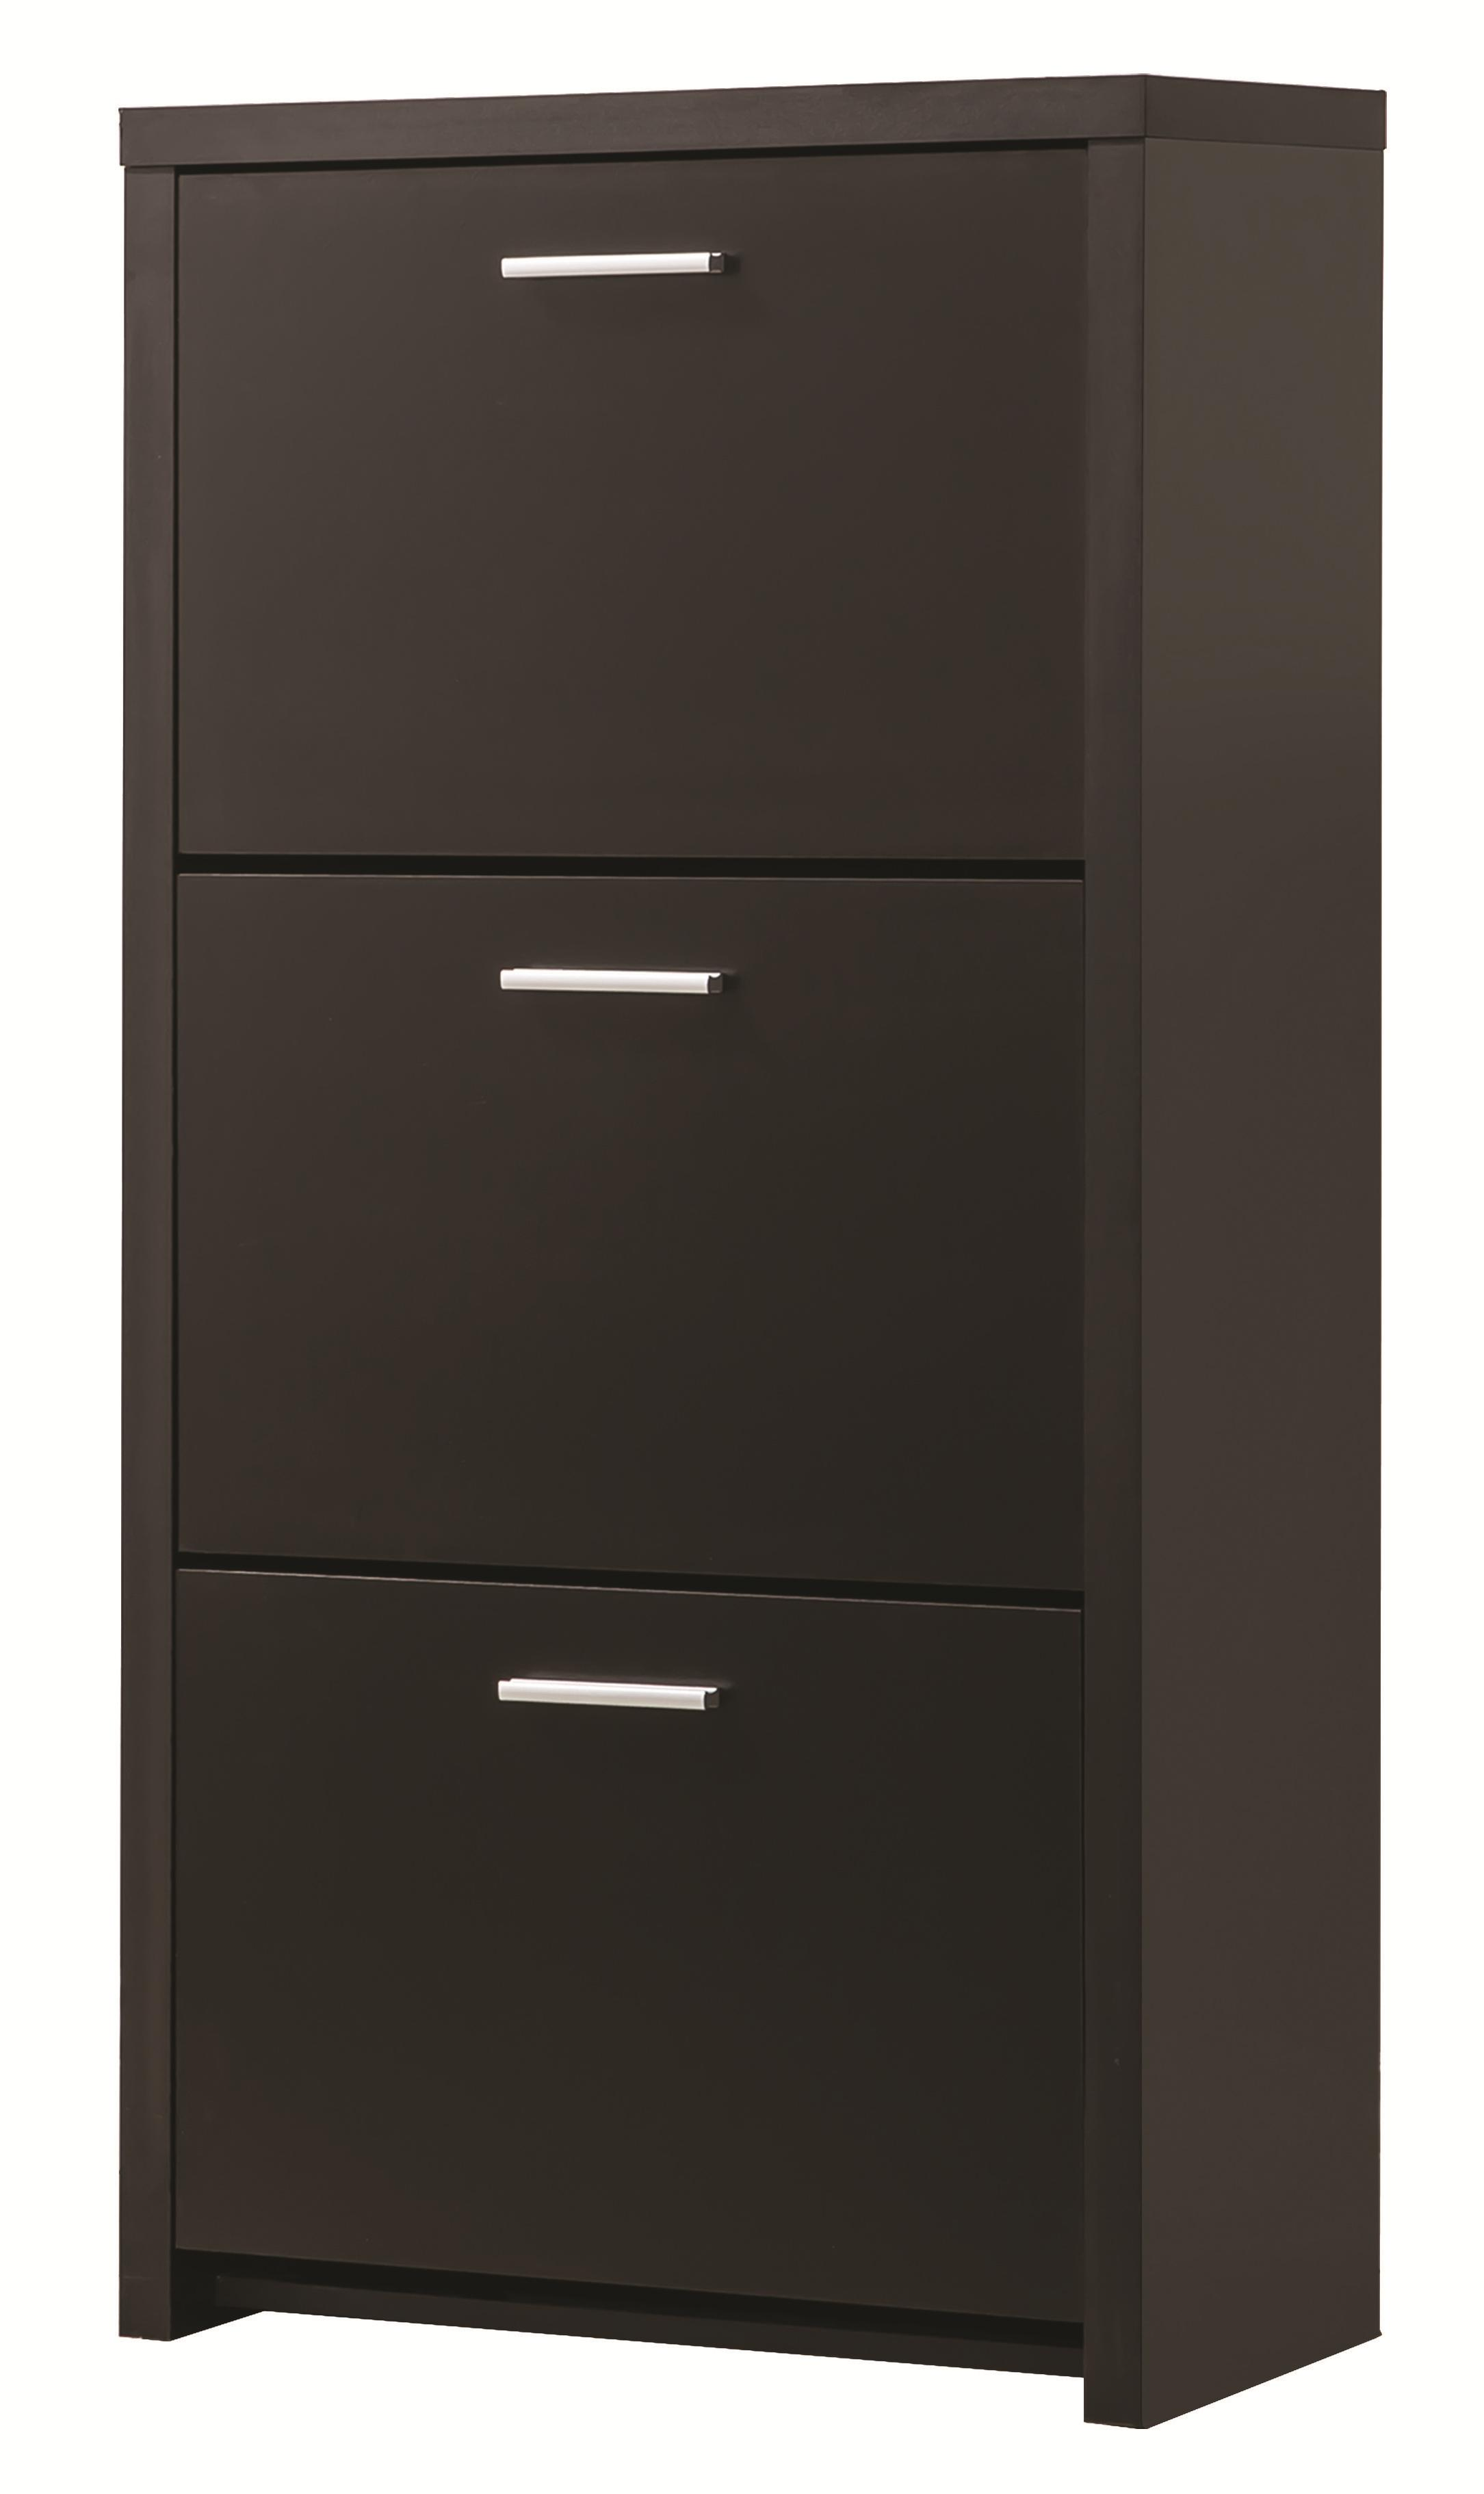 Accent Cabinets Shoe Cabinet by Coaster at Furniture Superstore - Rochester, MN